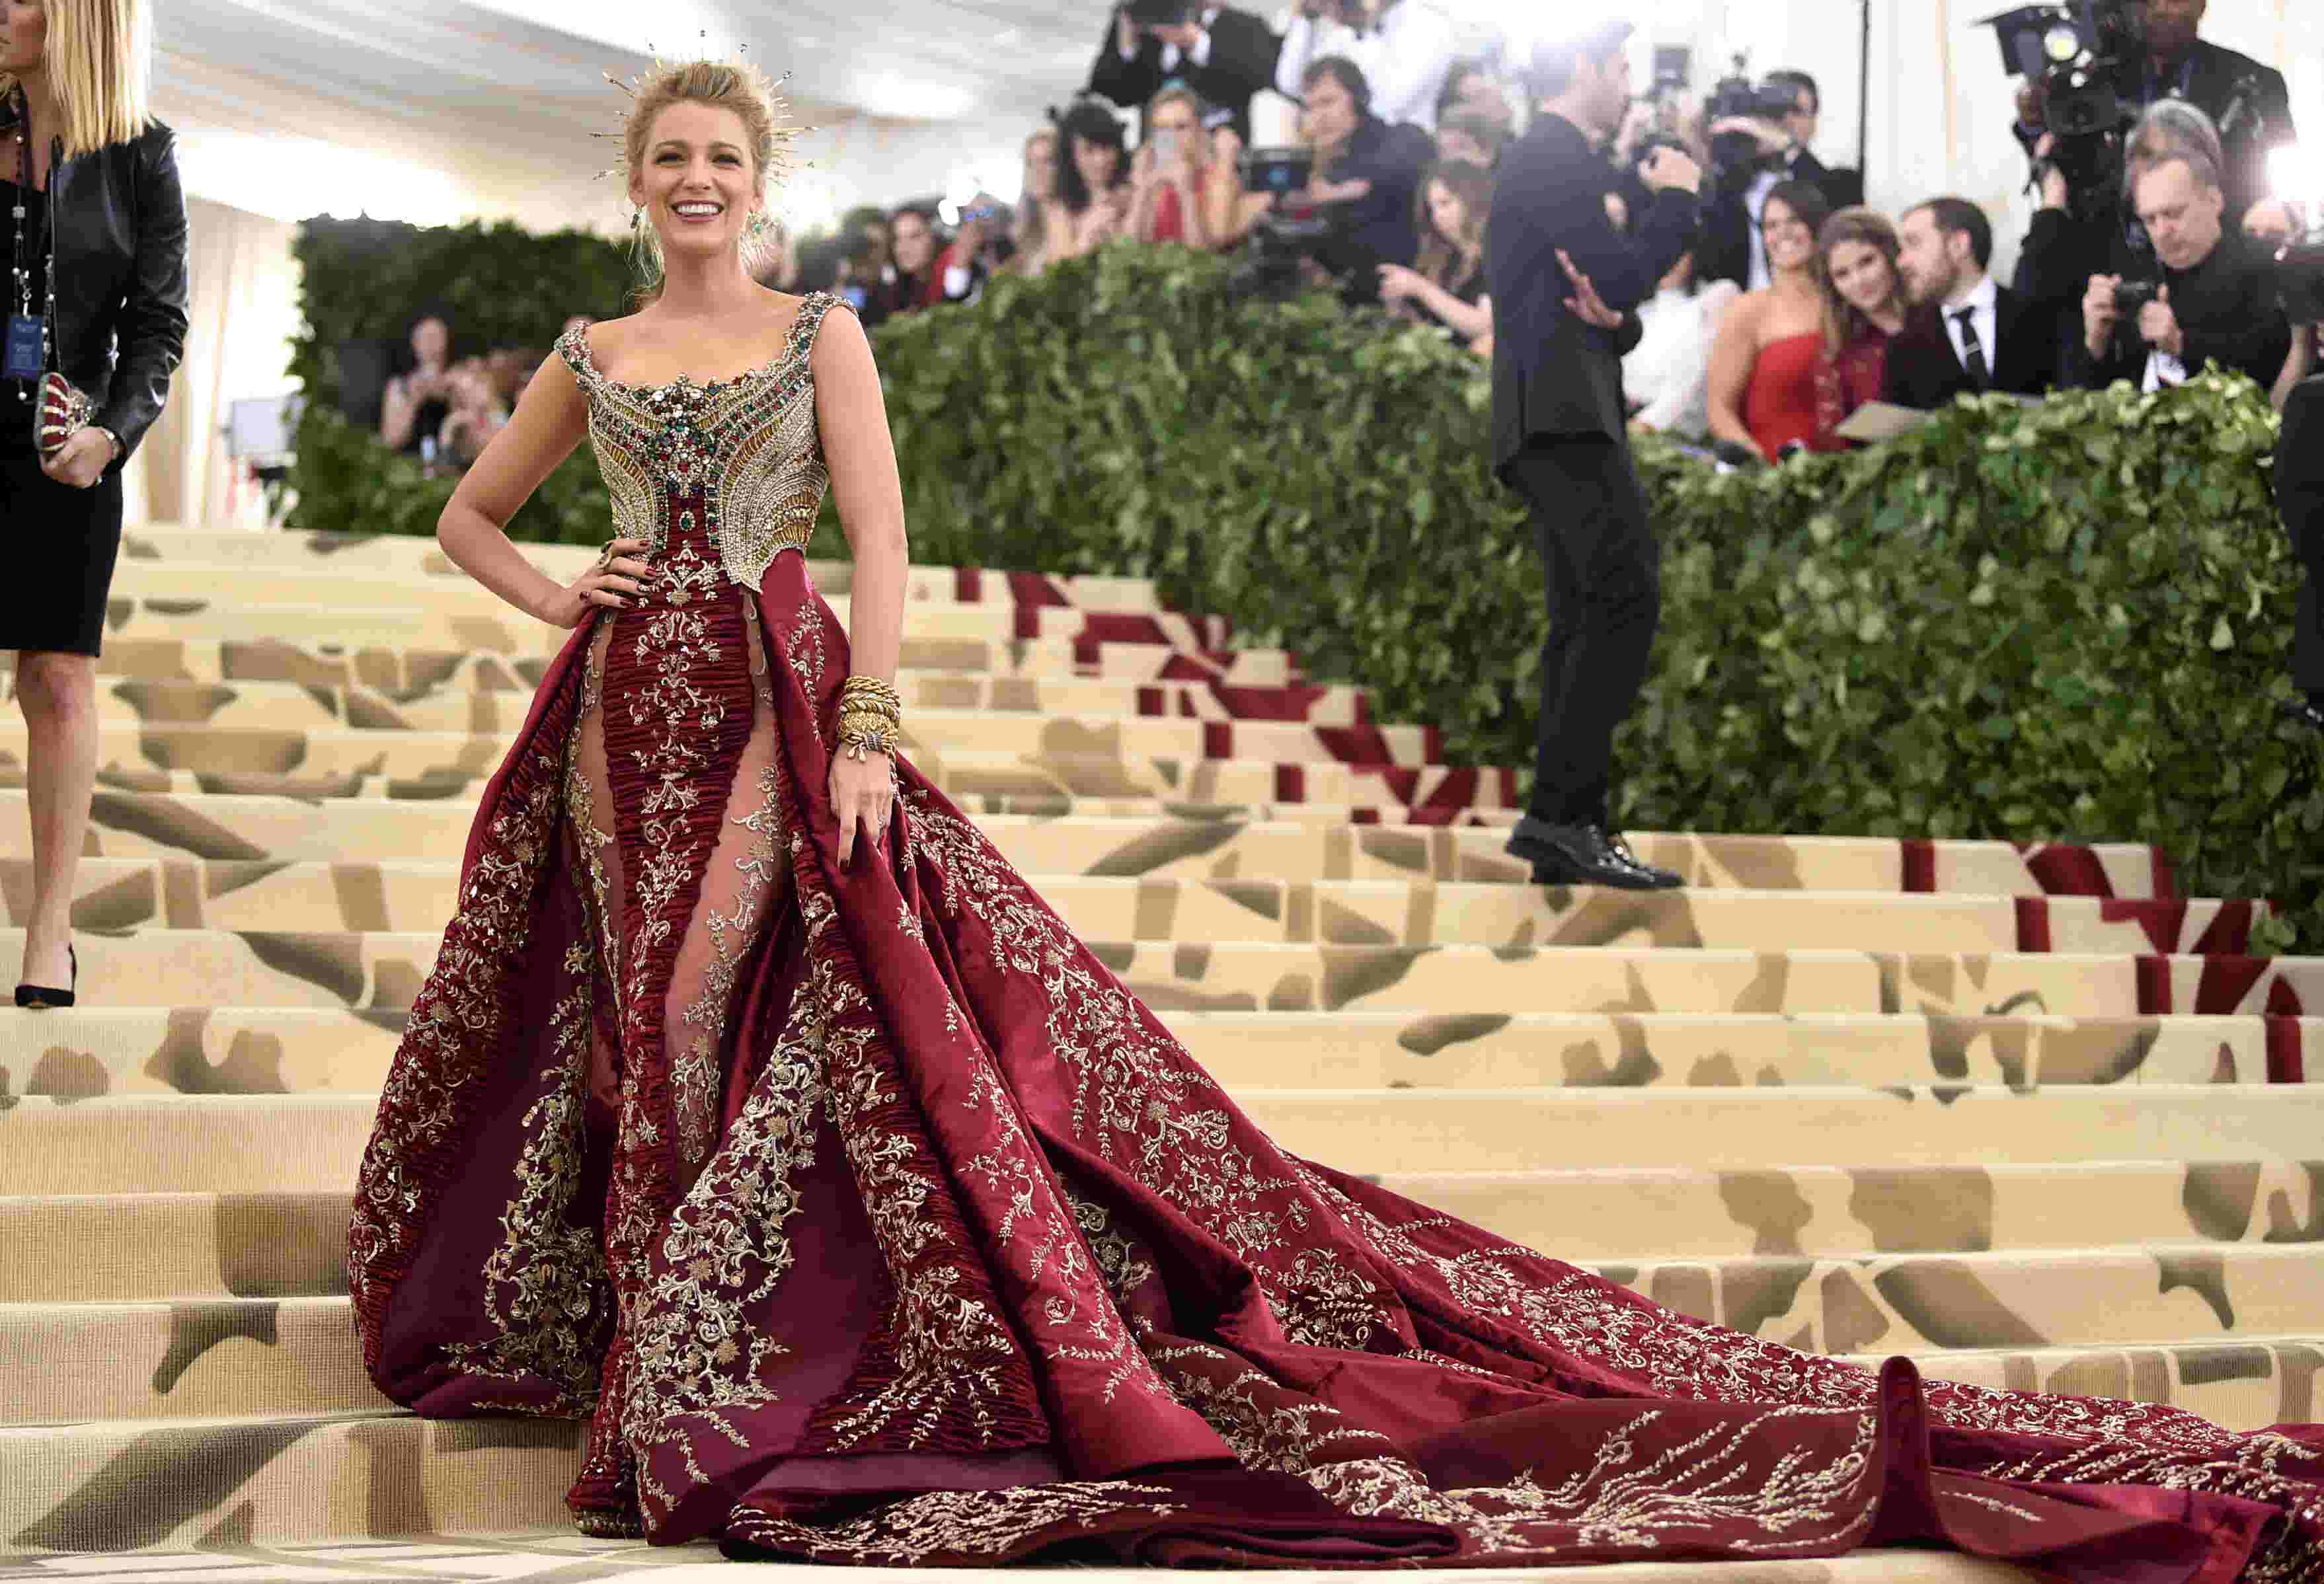 Met Gala 2018 Best Dressed Looks From Rihanna Amal Clooney And More